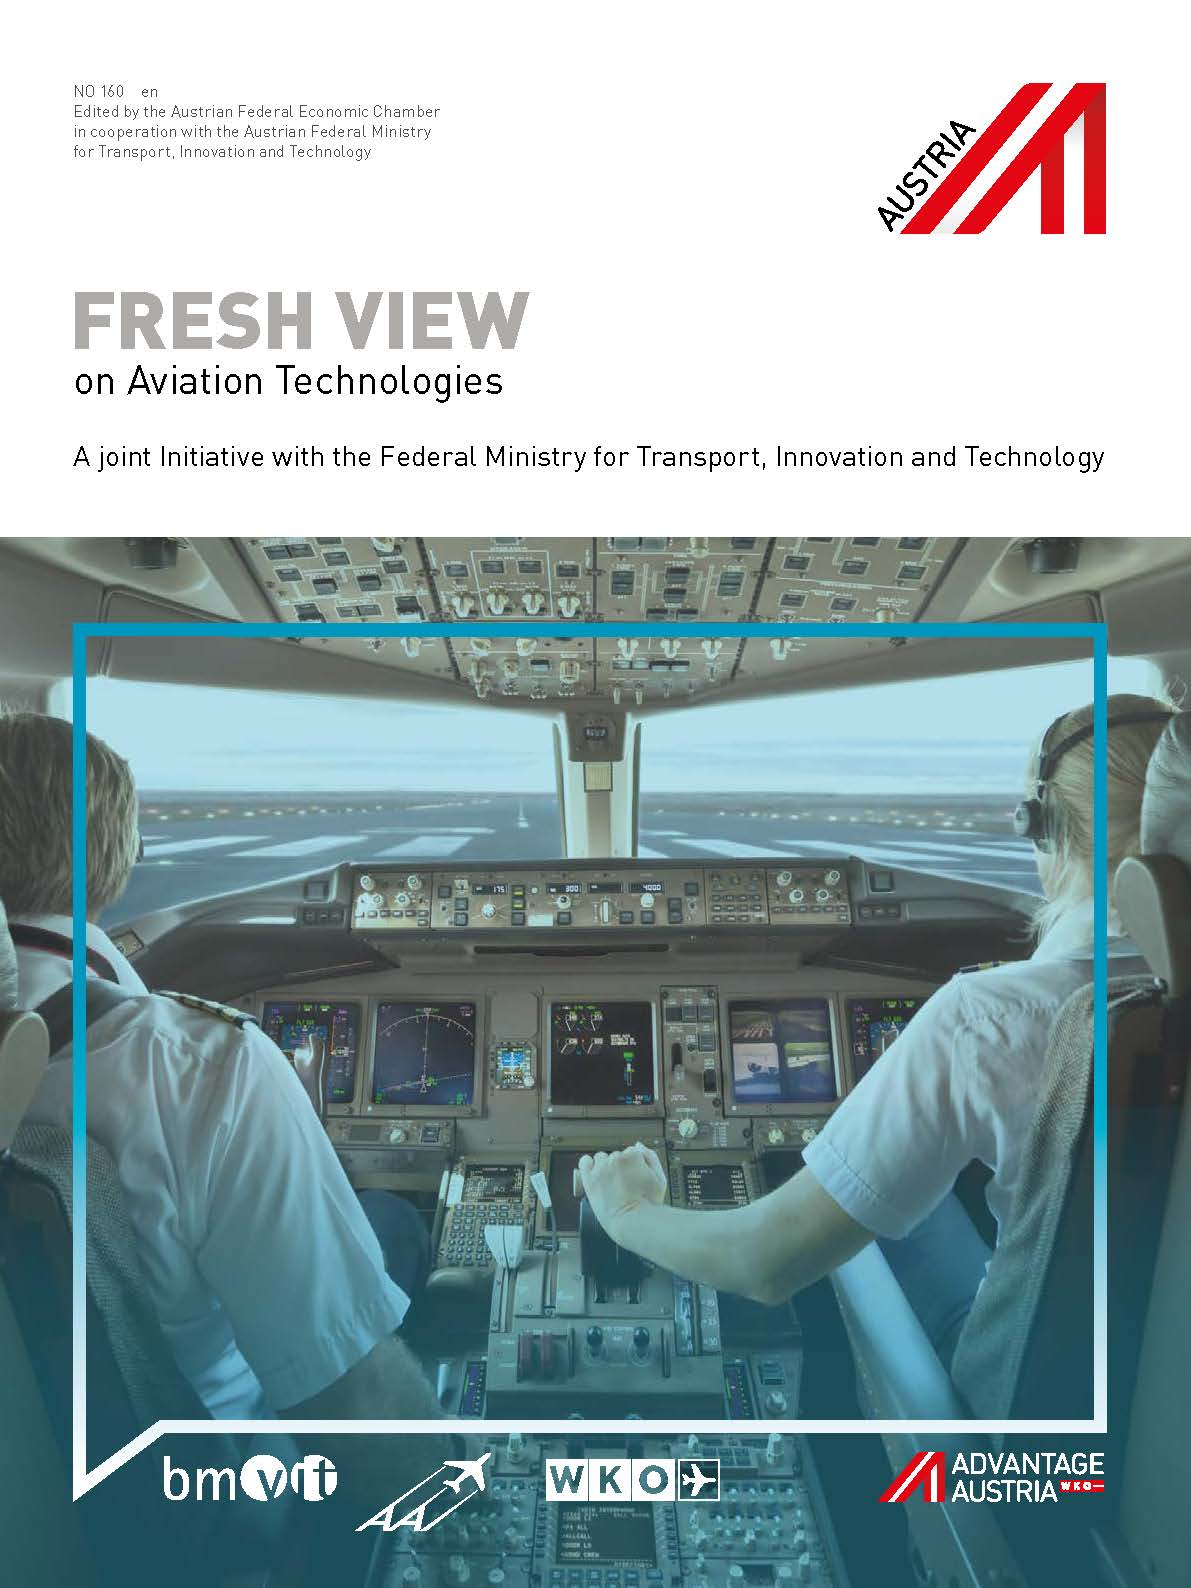 No. 160, Fresh View, Aviation Technologies, en